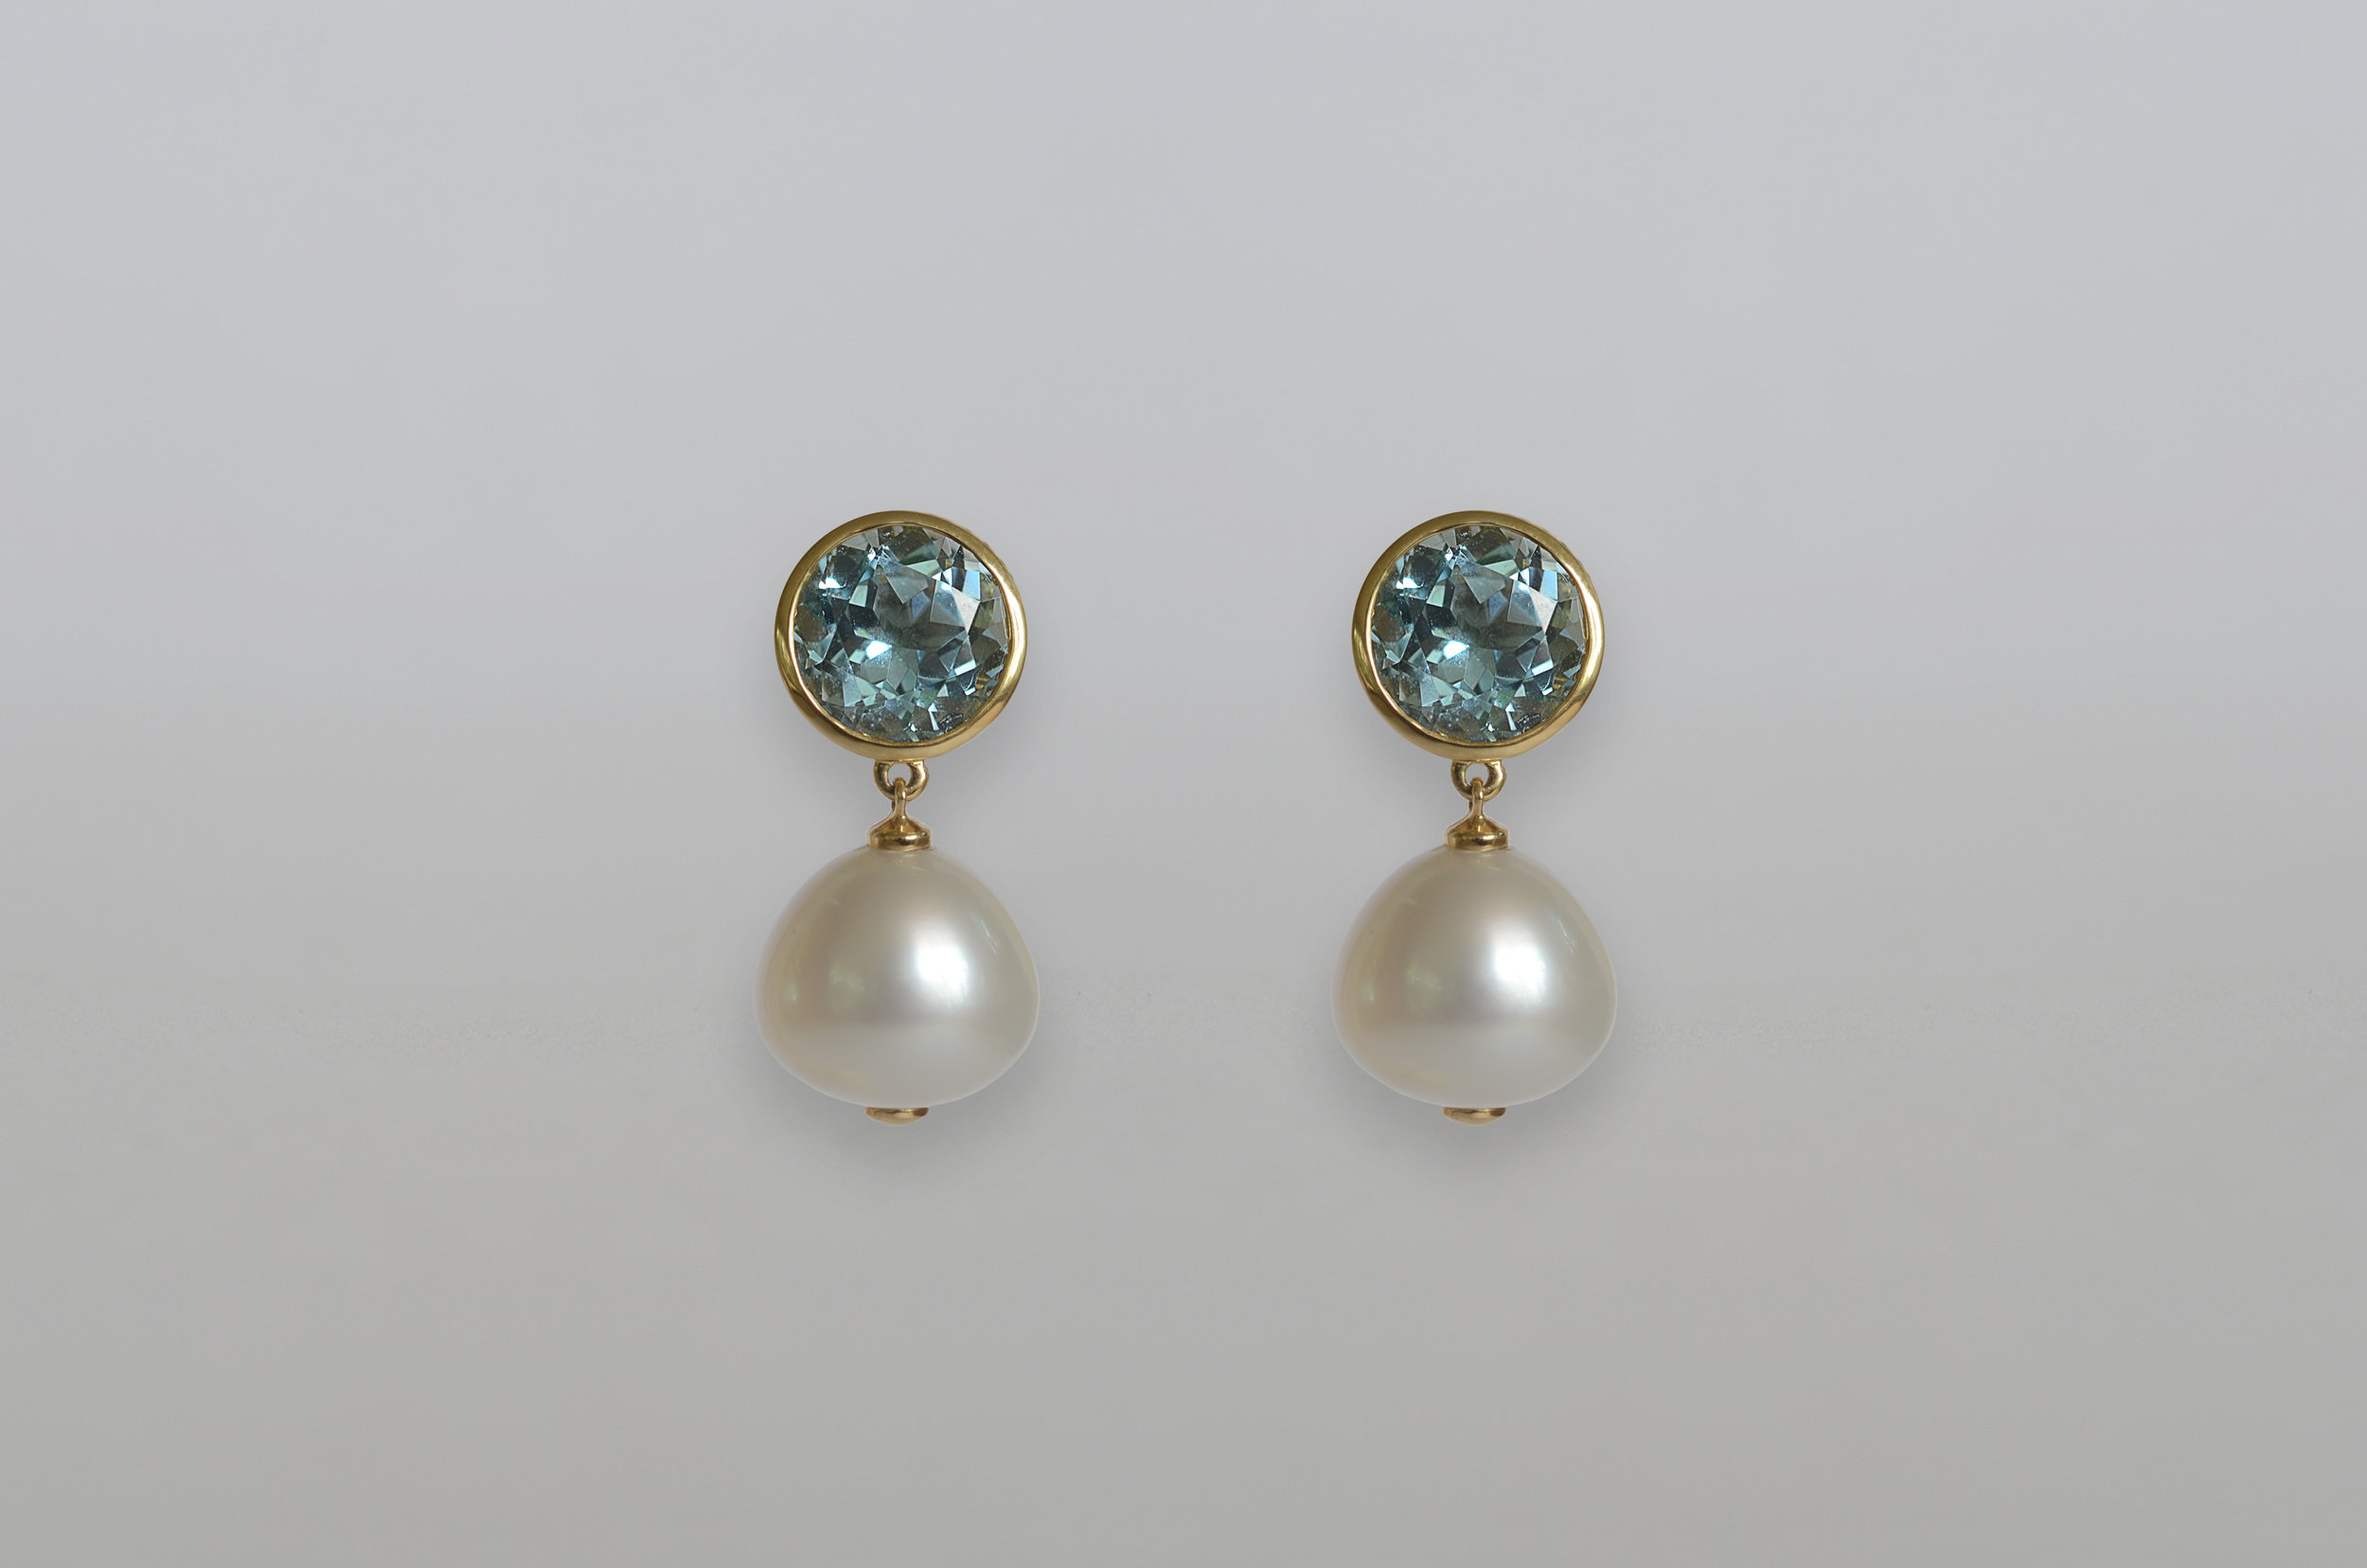 South Sea Pearl with Blue Topaz Drop Earrings set in 18kt Yellow Gold